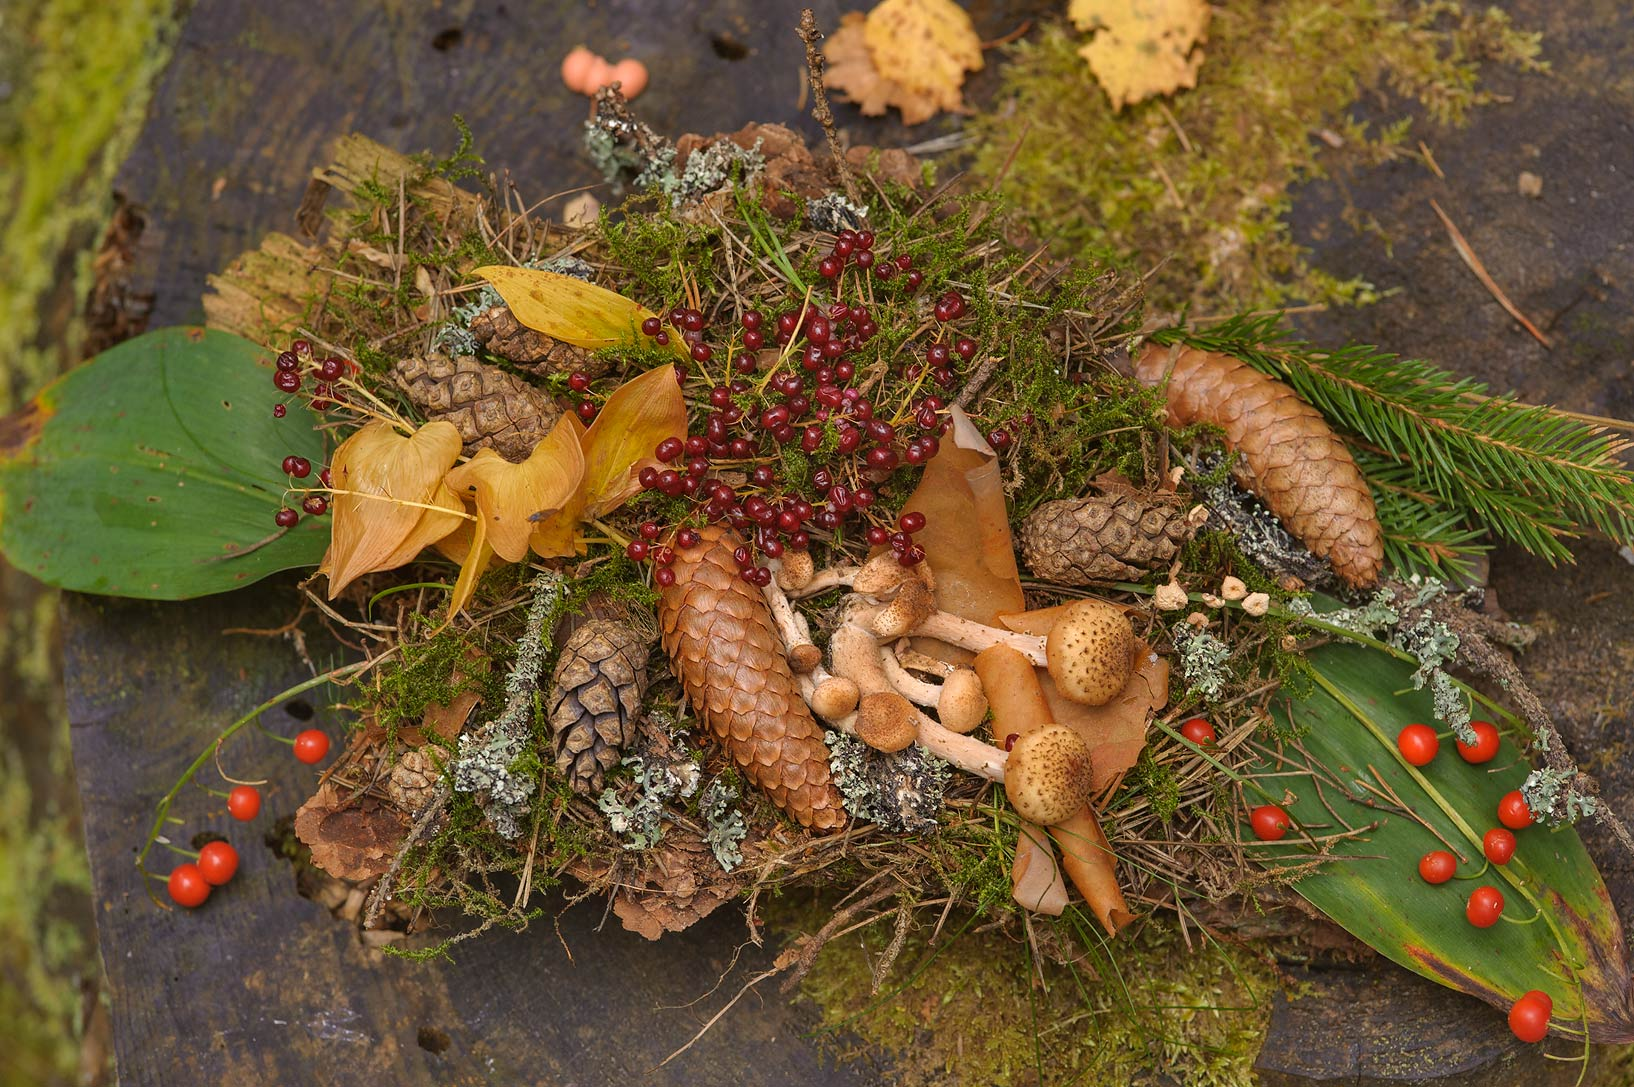 Fall bouquet composition on a tree stump near...miles west from St.Petersburg. Russia